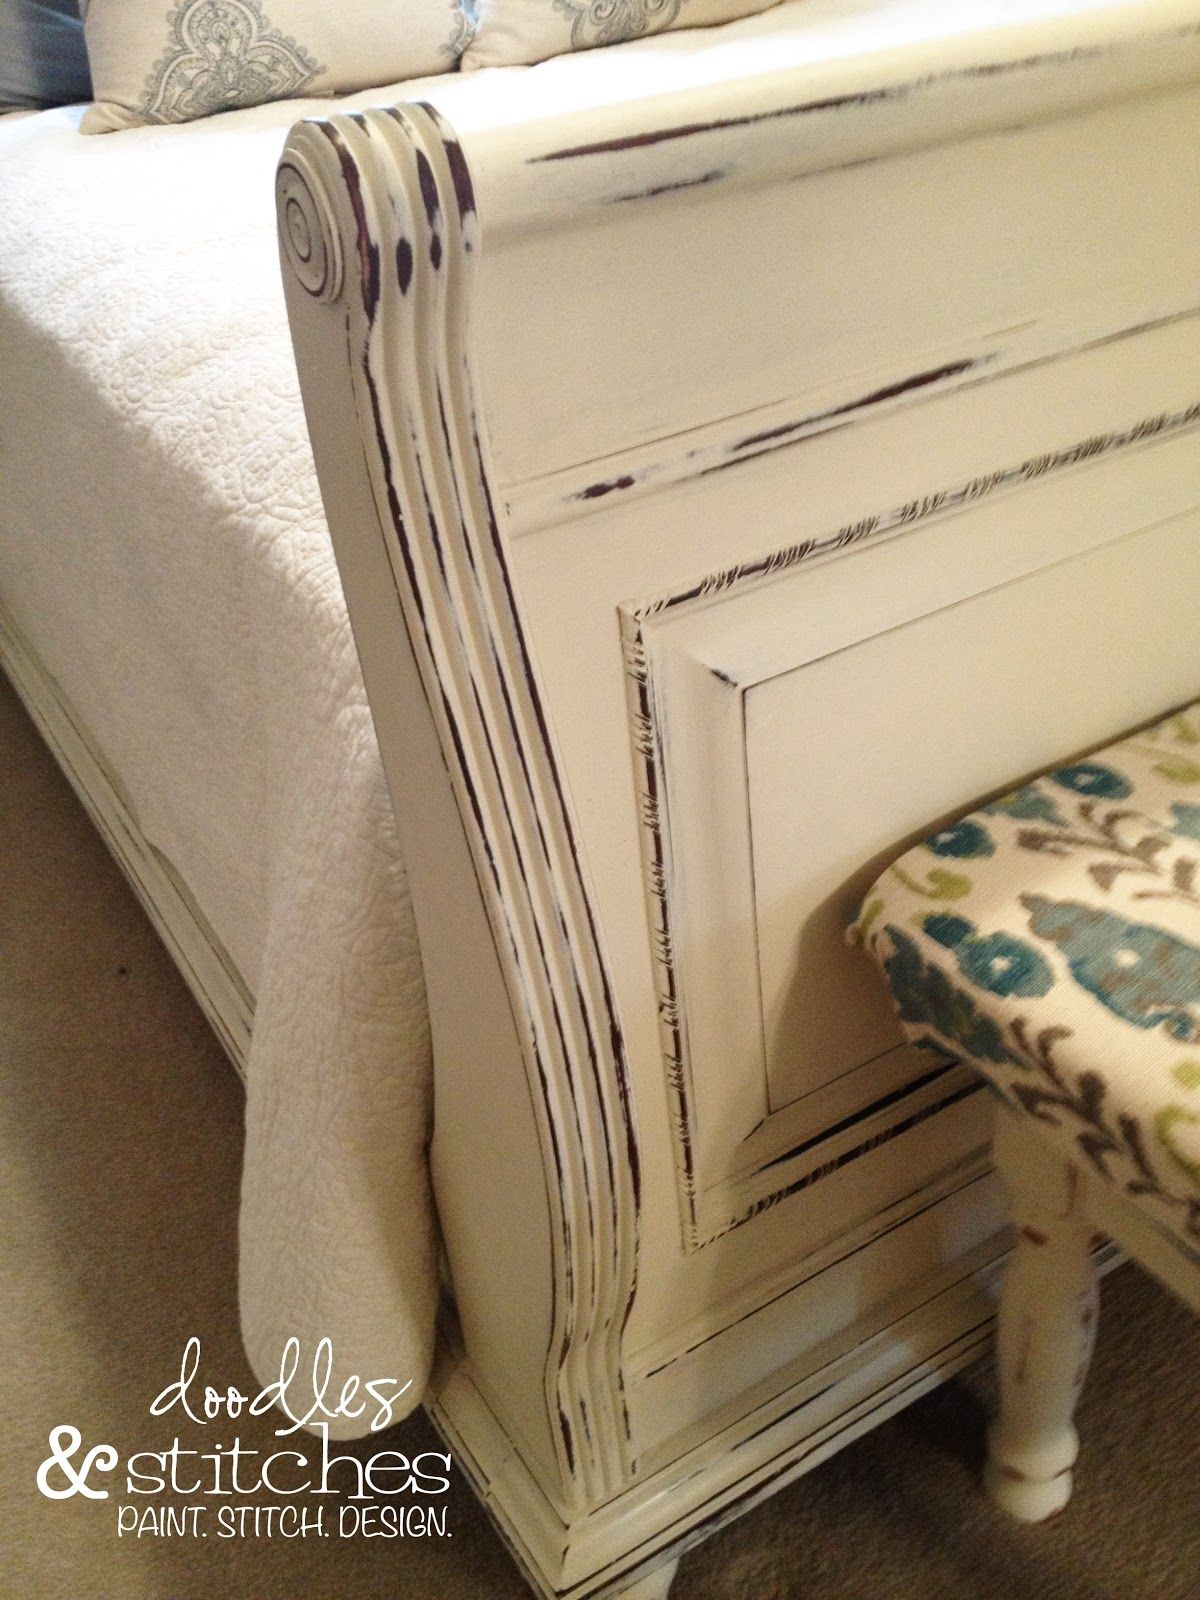 Painting Bedroom Furniture White Painted Sleigh Bed Doodles Stitches Guest Room Pinterest